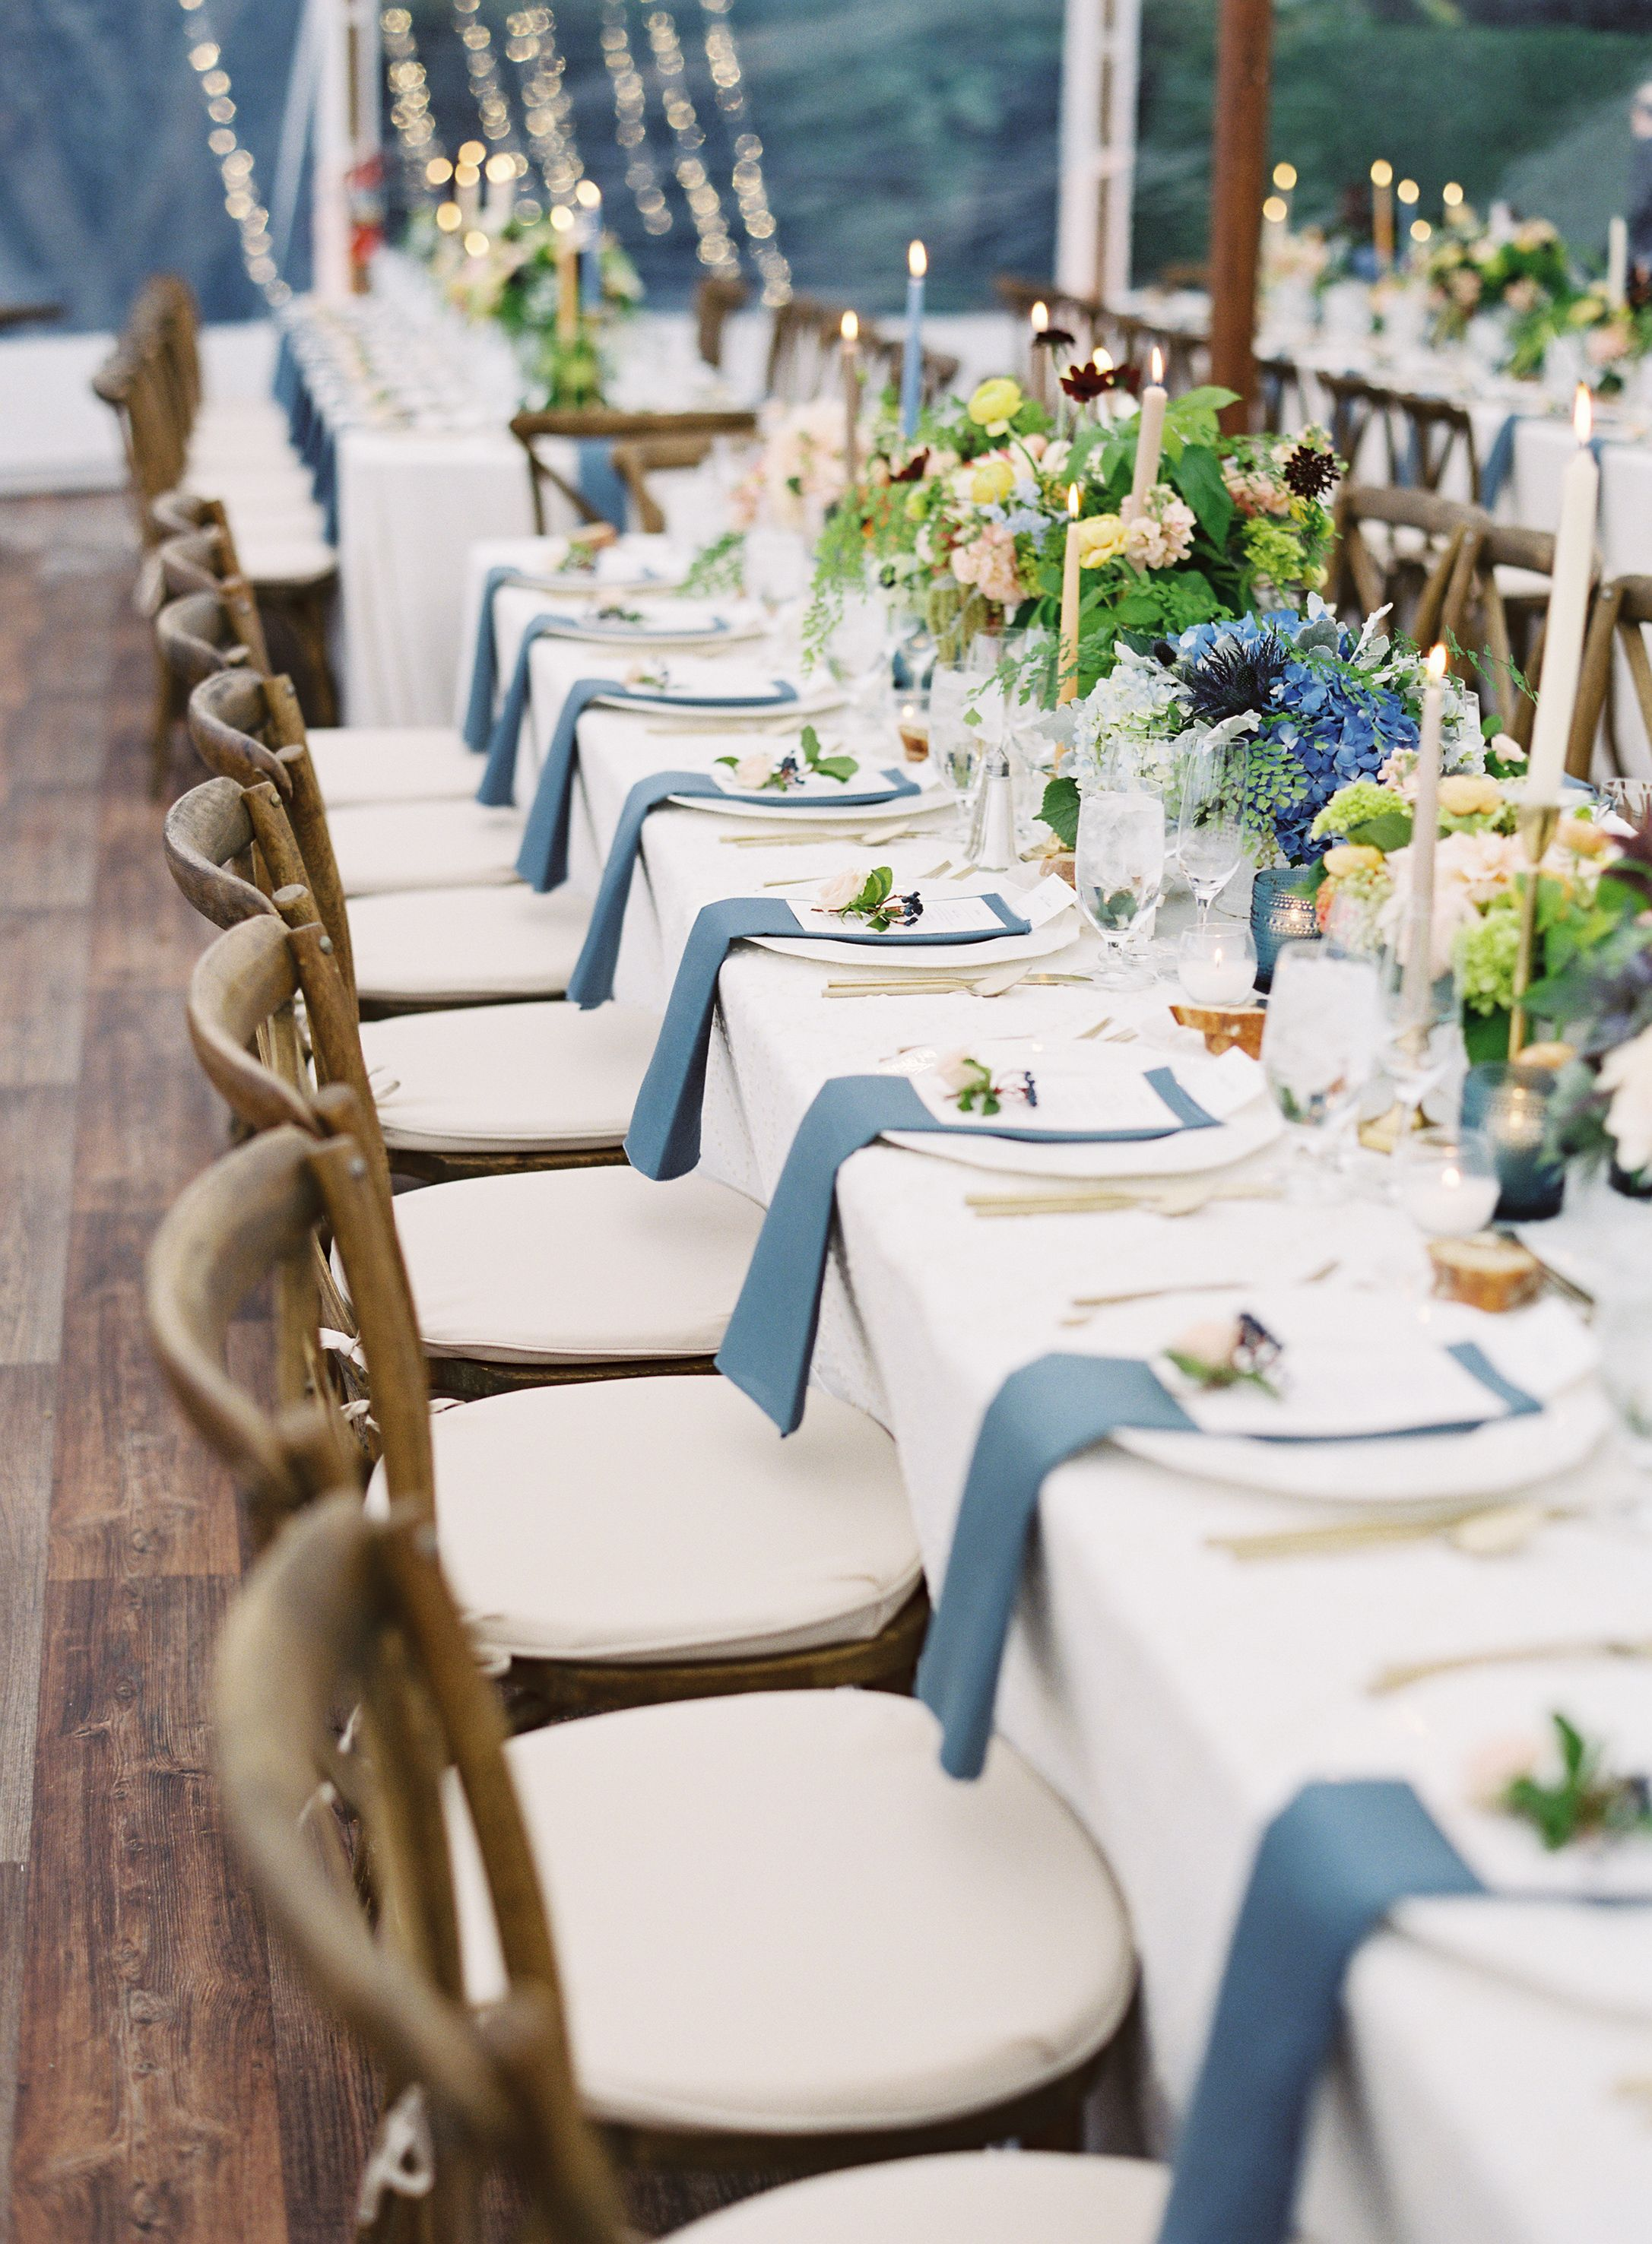 Modern Art-Inspired Wedding With Pops of French Blue | Linen rentals ...